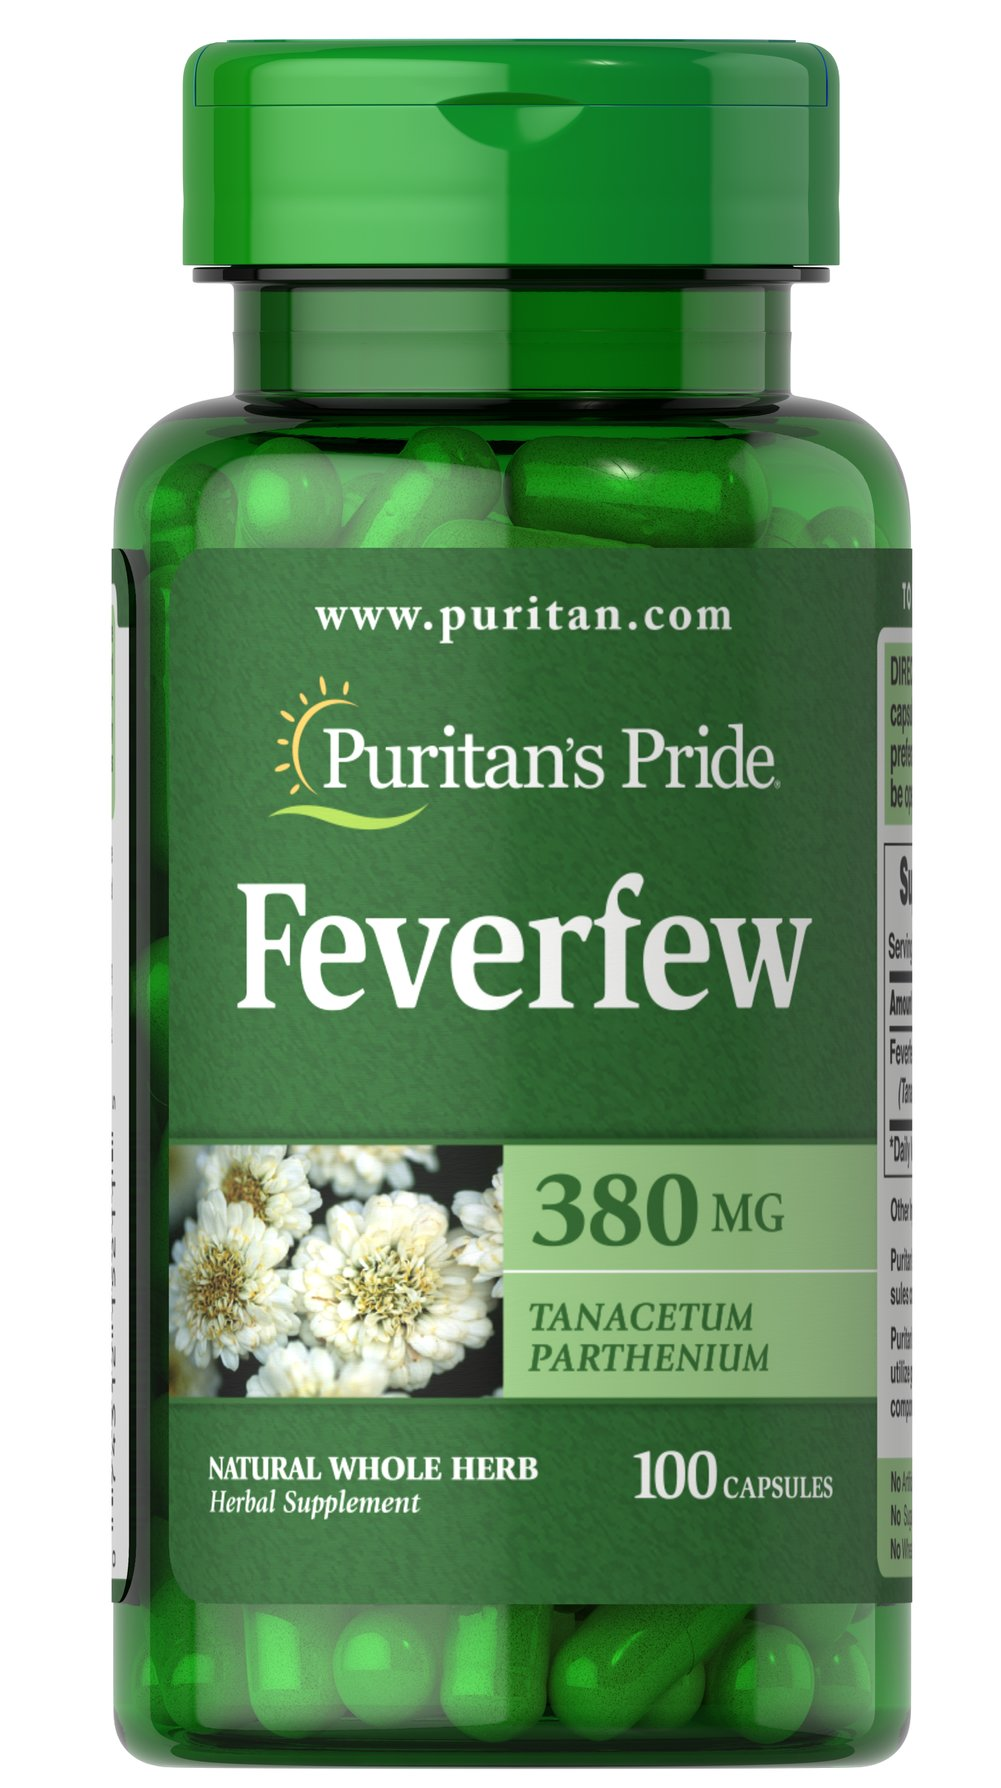 Feverfew 380 mg Thumbnail Alternate Bottle View